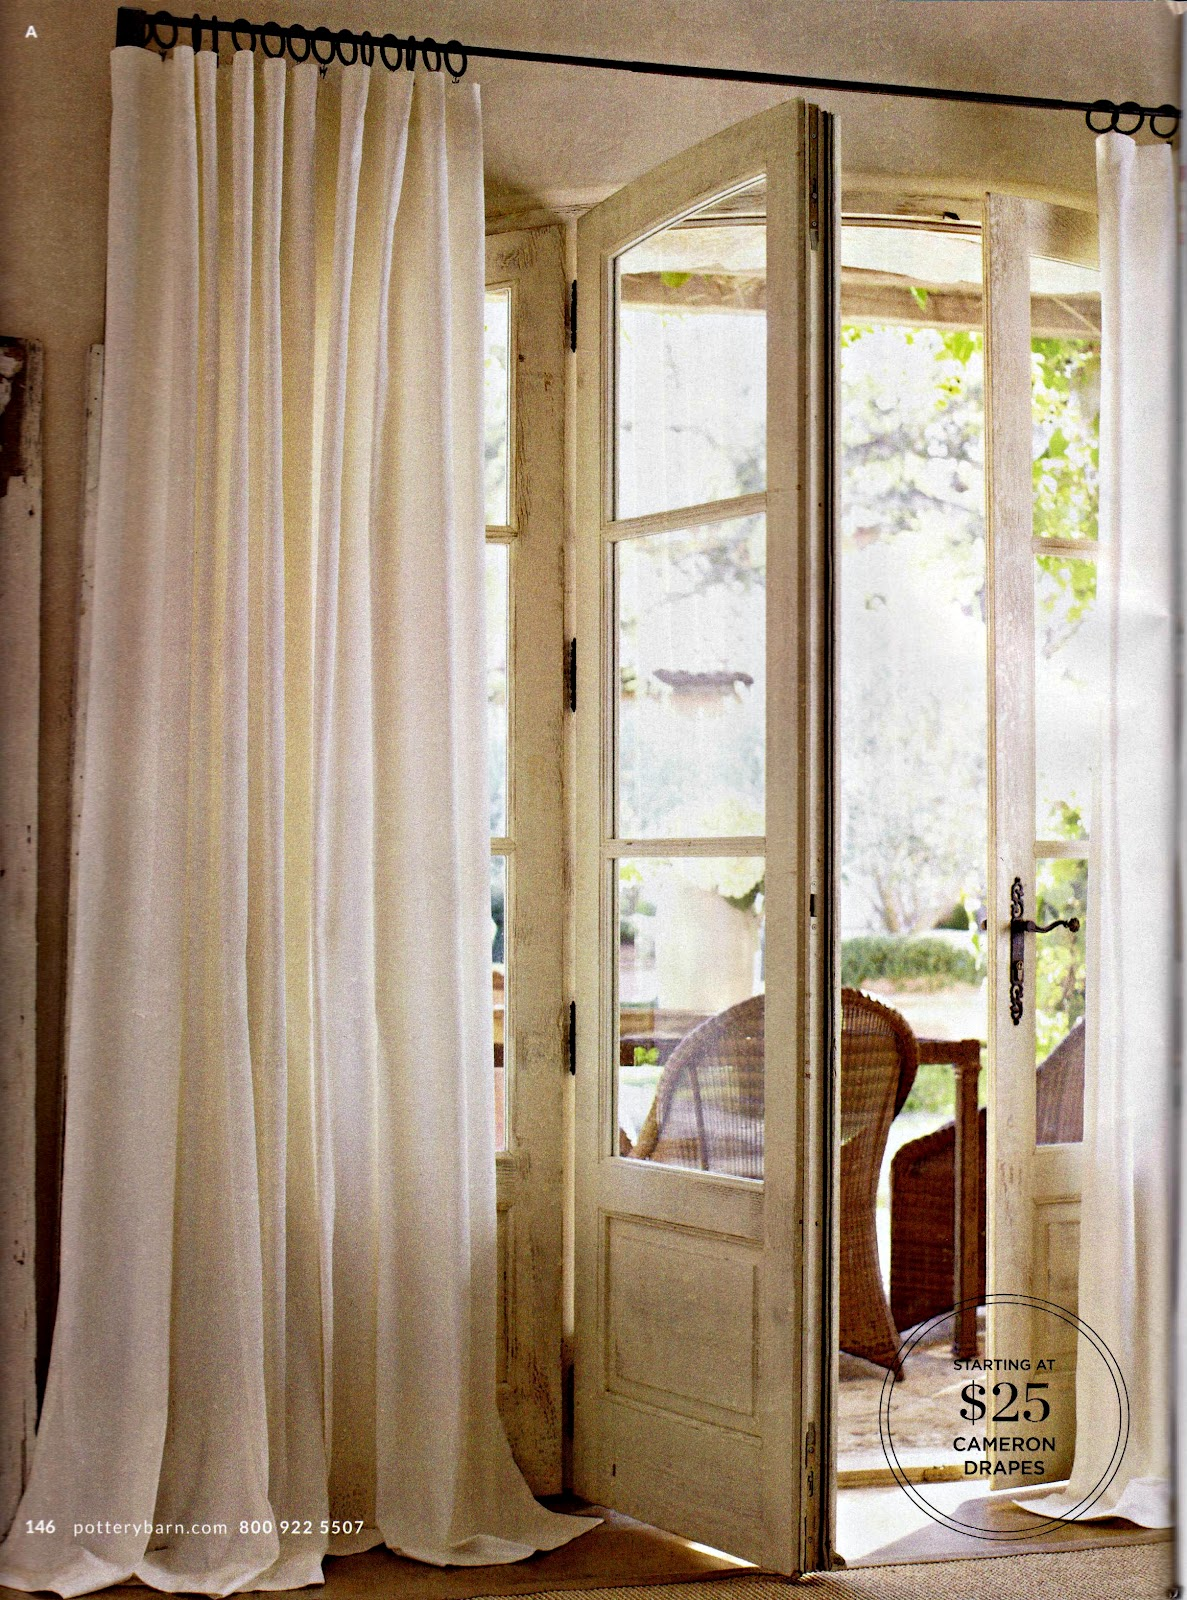 ... find these simple curtains They are Cameron Cotton curtain panels